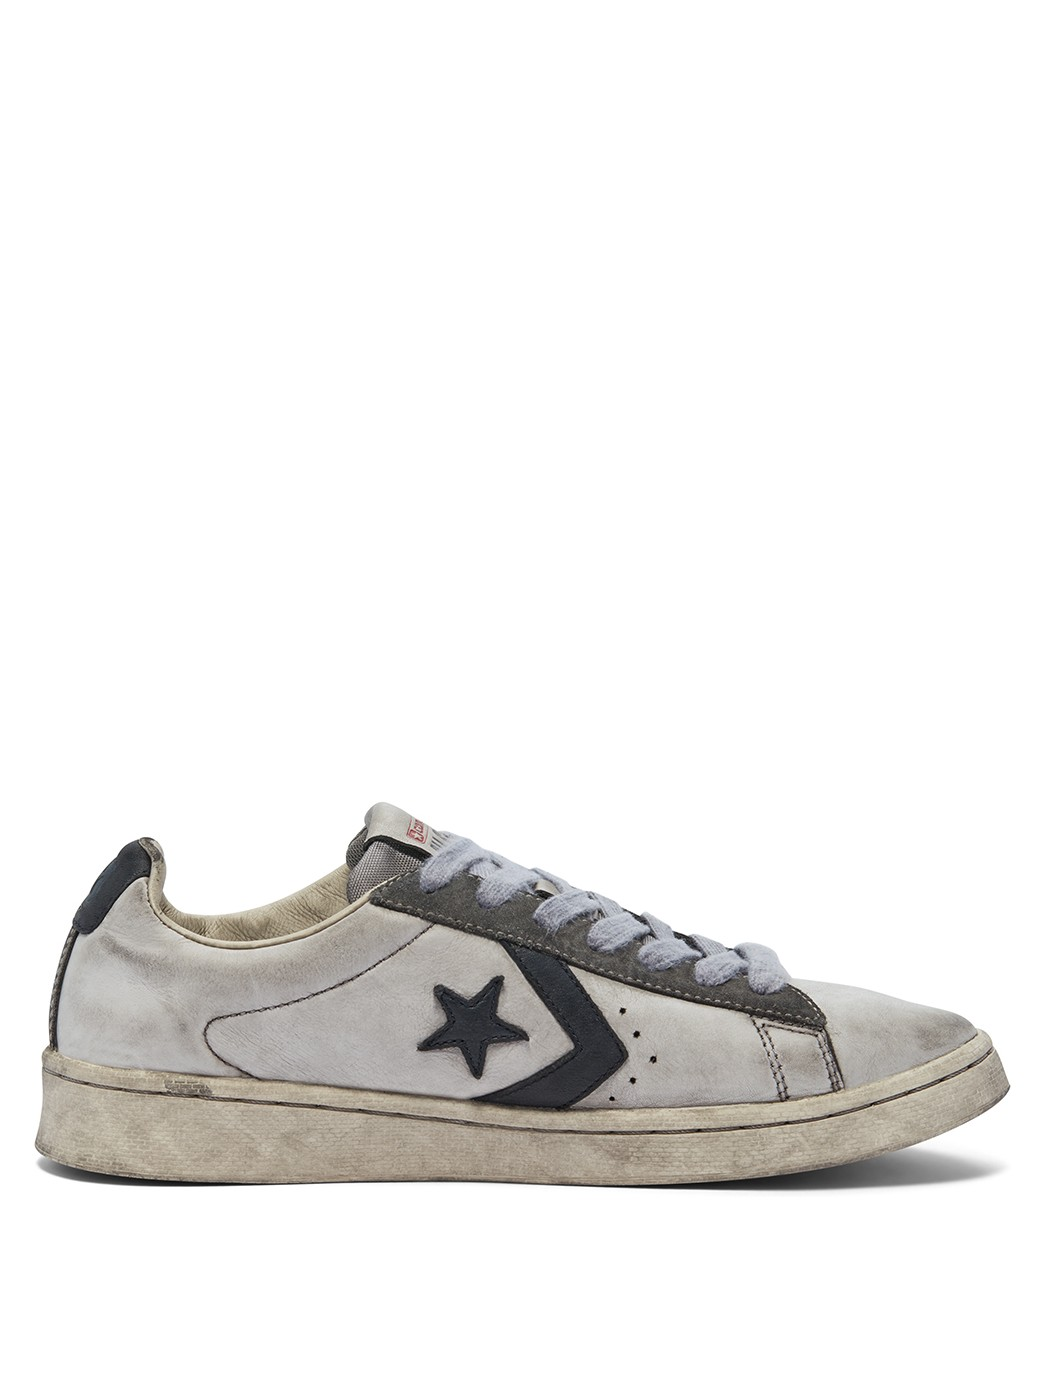 SMOKE IN PRO LEATHER LOW TOP CONVERSE 169120C